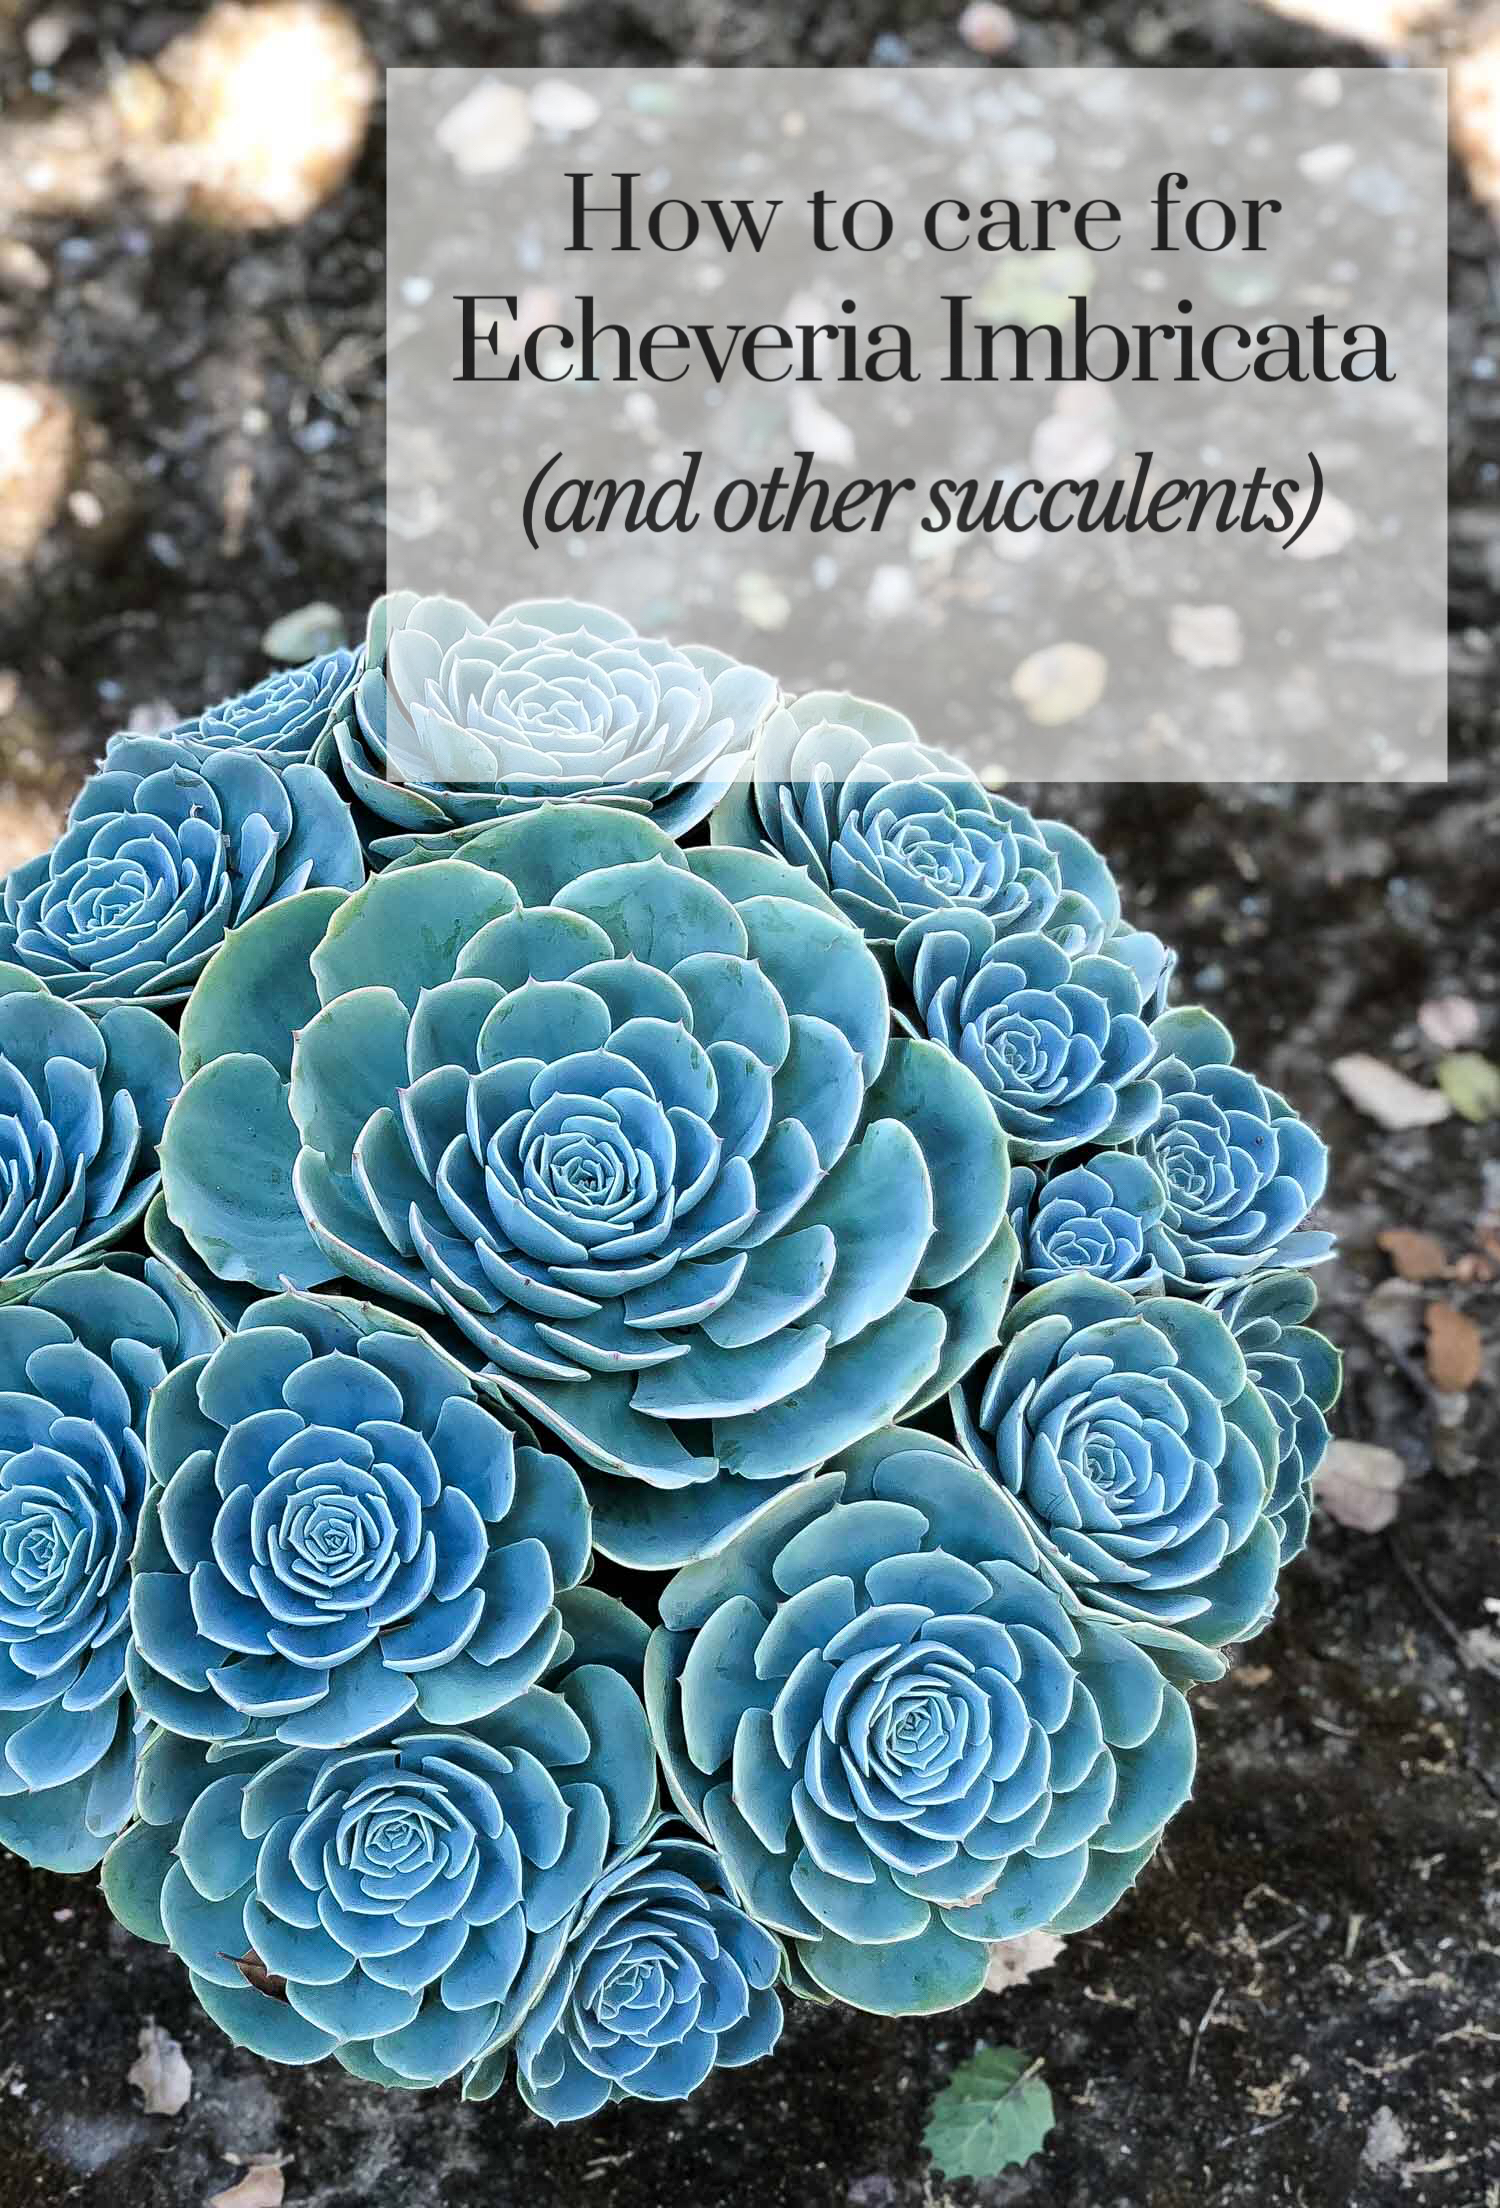 How To Care For Echeveria Imbricata And Other Succulents